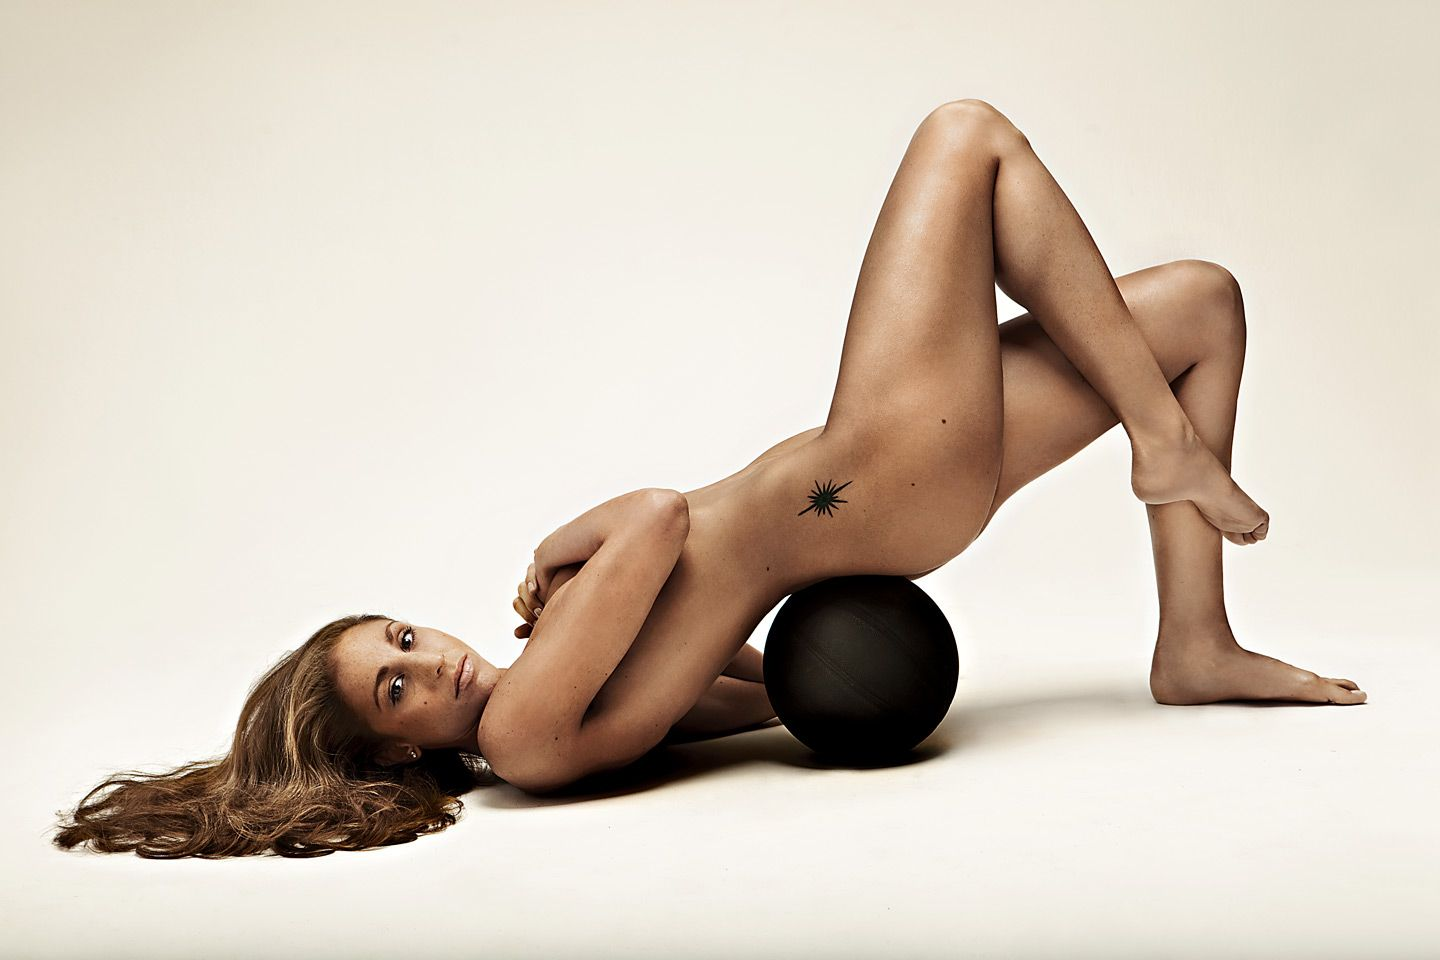 img@@@.imagetwist.com imagesize:1440x960 @@2 17 best images about body on Pinterest | Wolves, Track field and Ronda  rousey